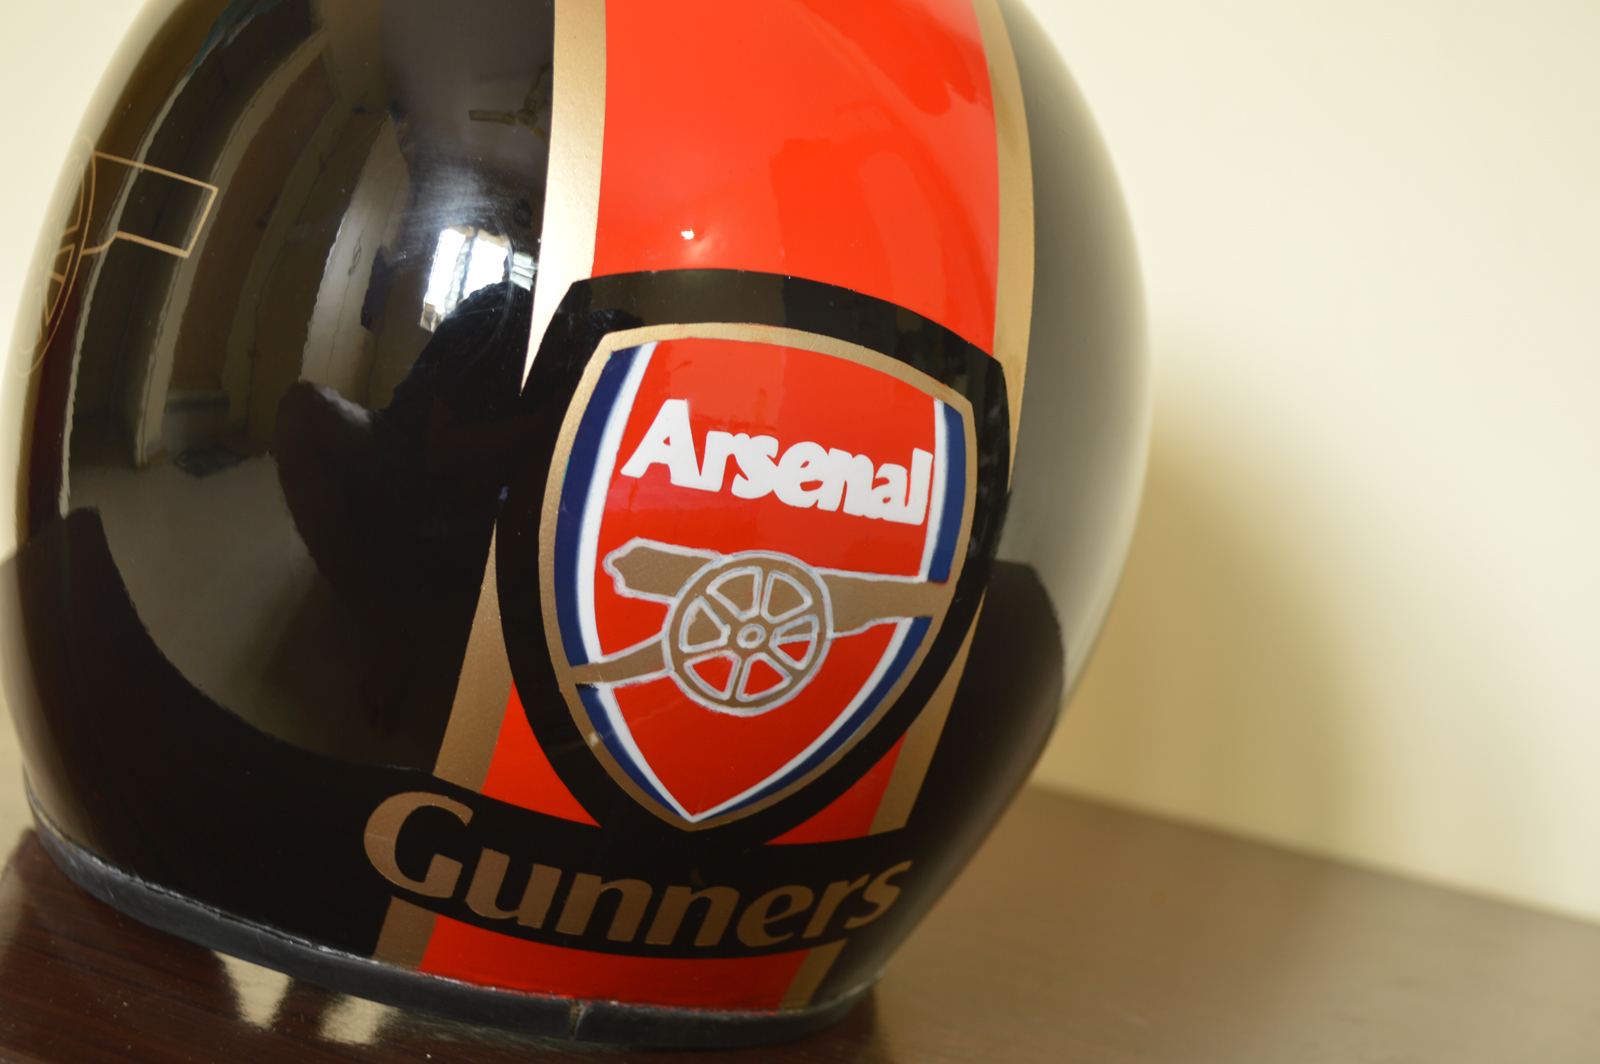 Image result for arsenal motorcycle images